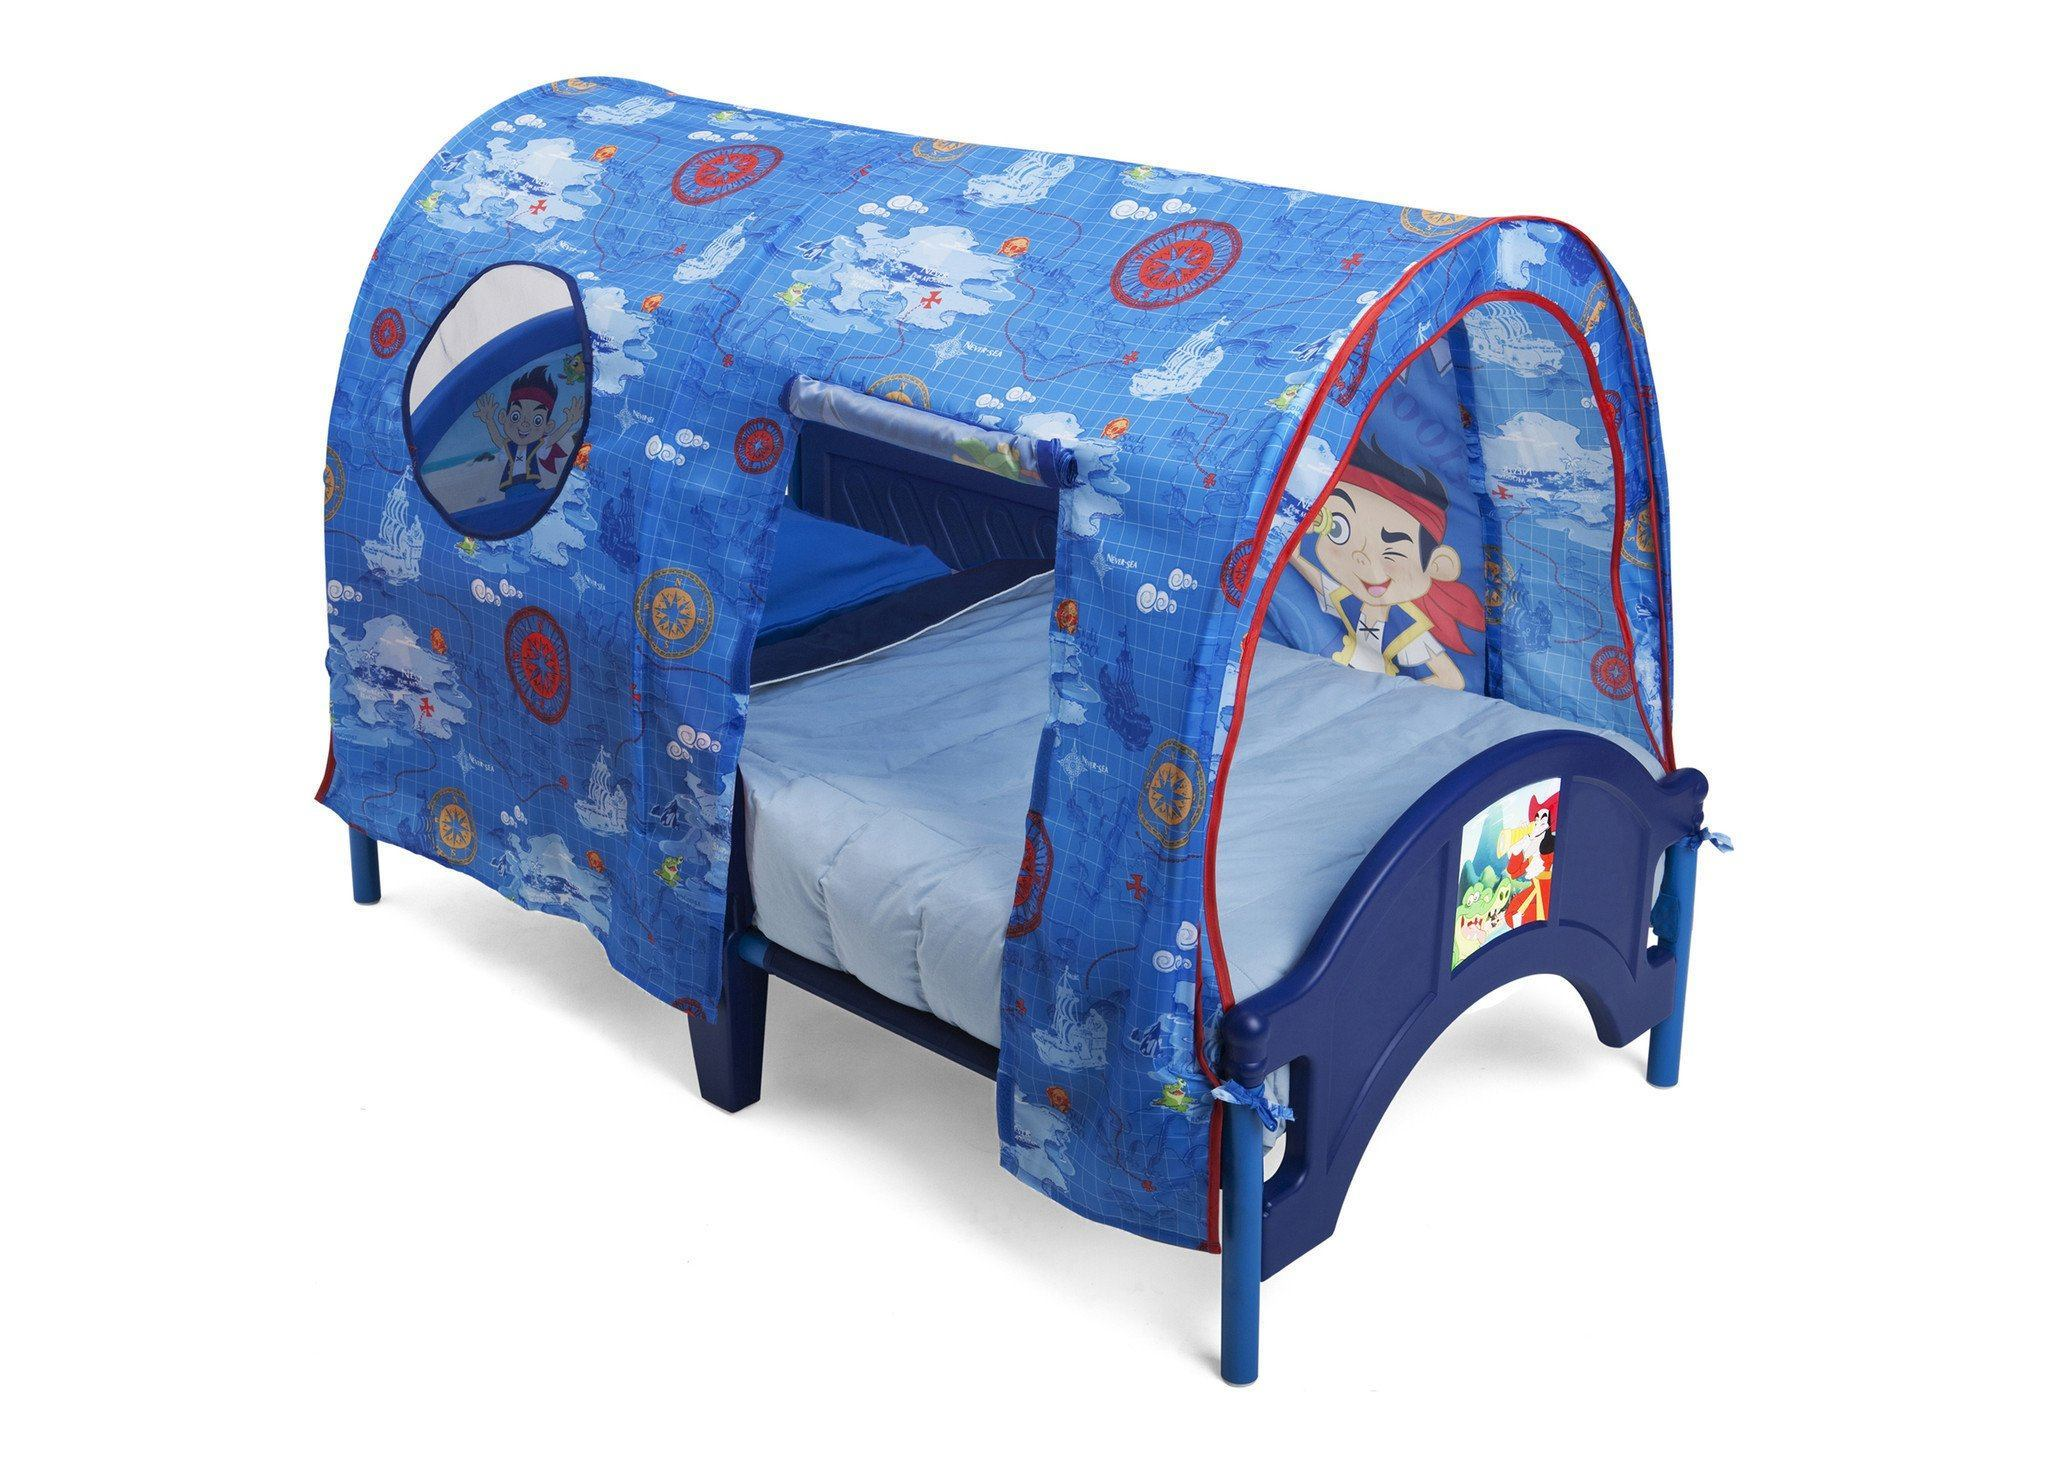 Delta Children Jake and the Neverland Pirates Tent Bed, Right View Style 1 a1a